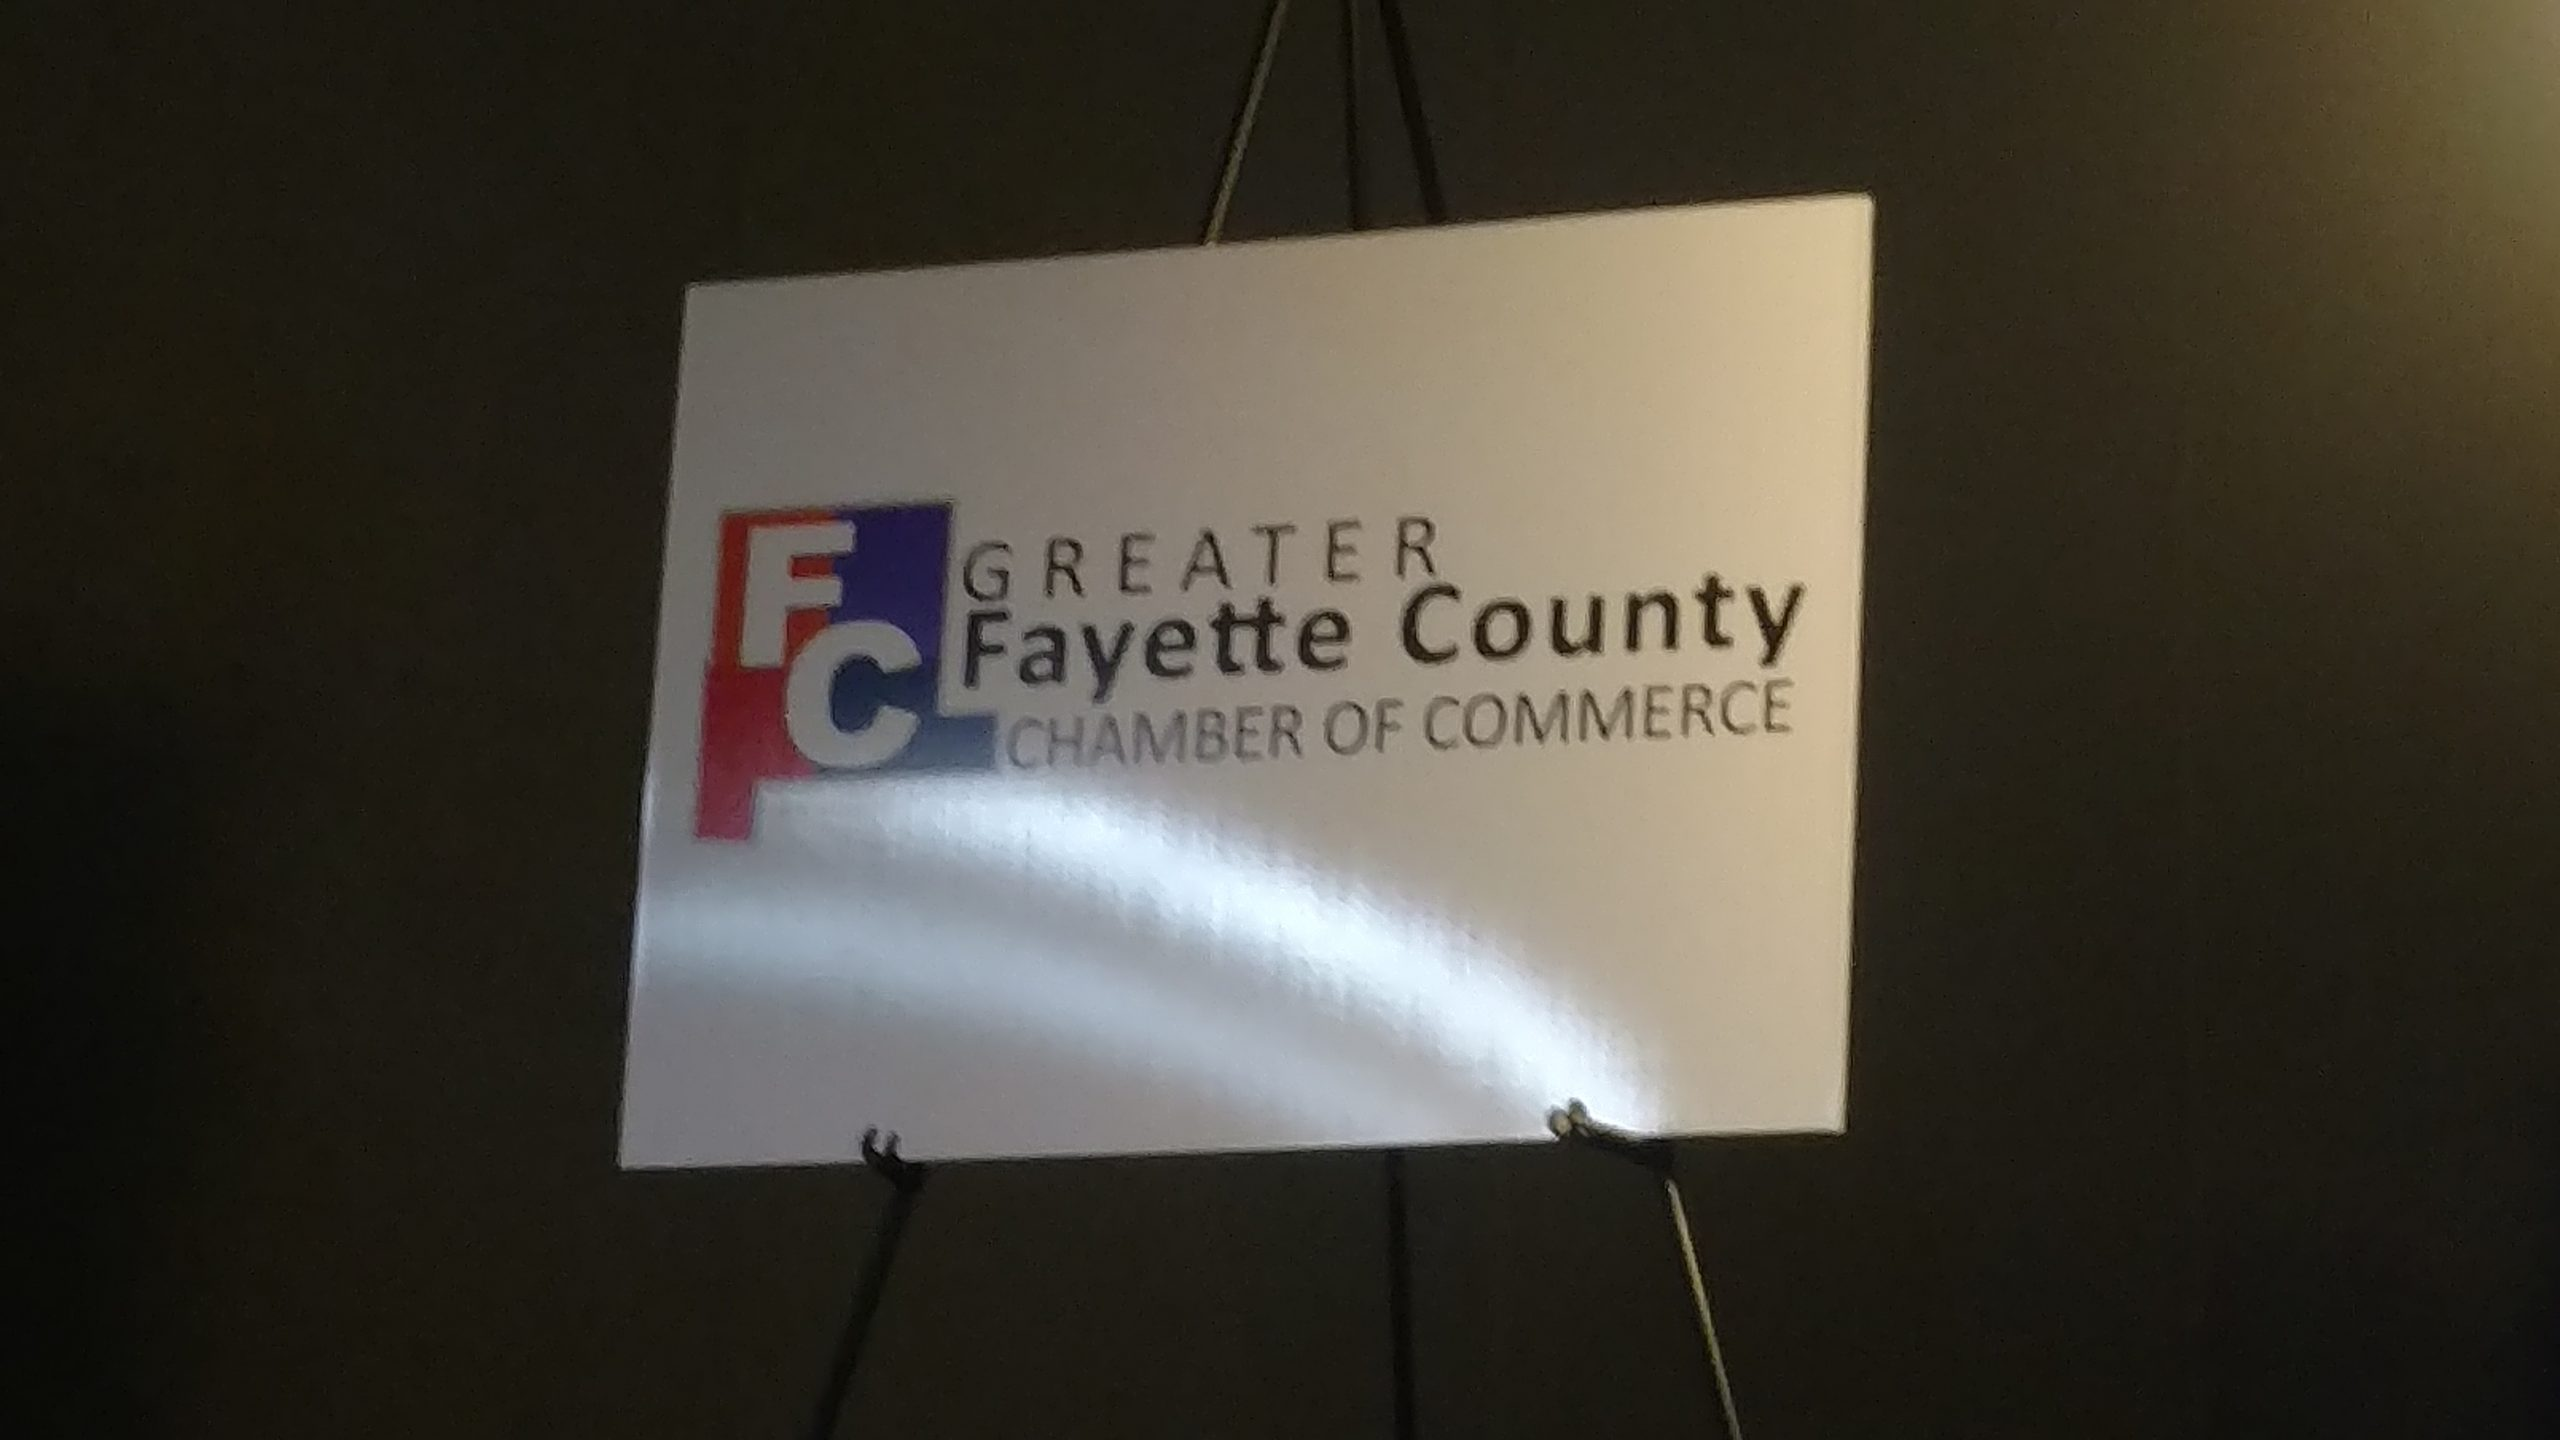 Hopkins, Wilber win Abe Awards--New Greater Fayette County Chamber logo unveiled